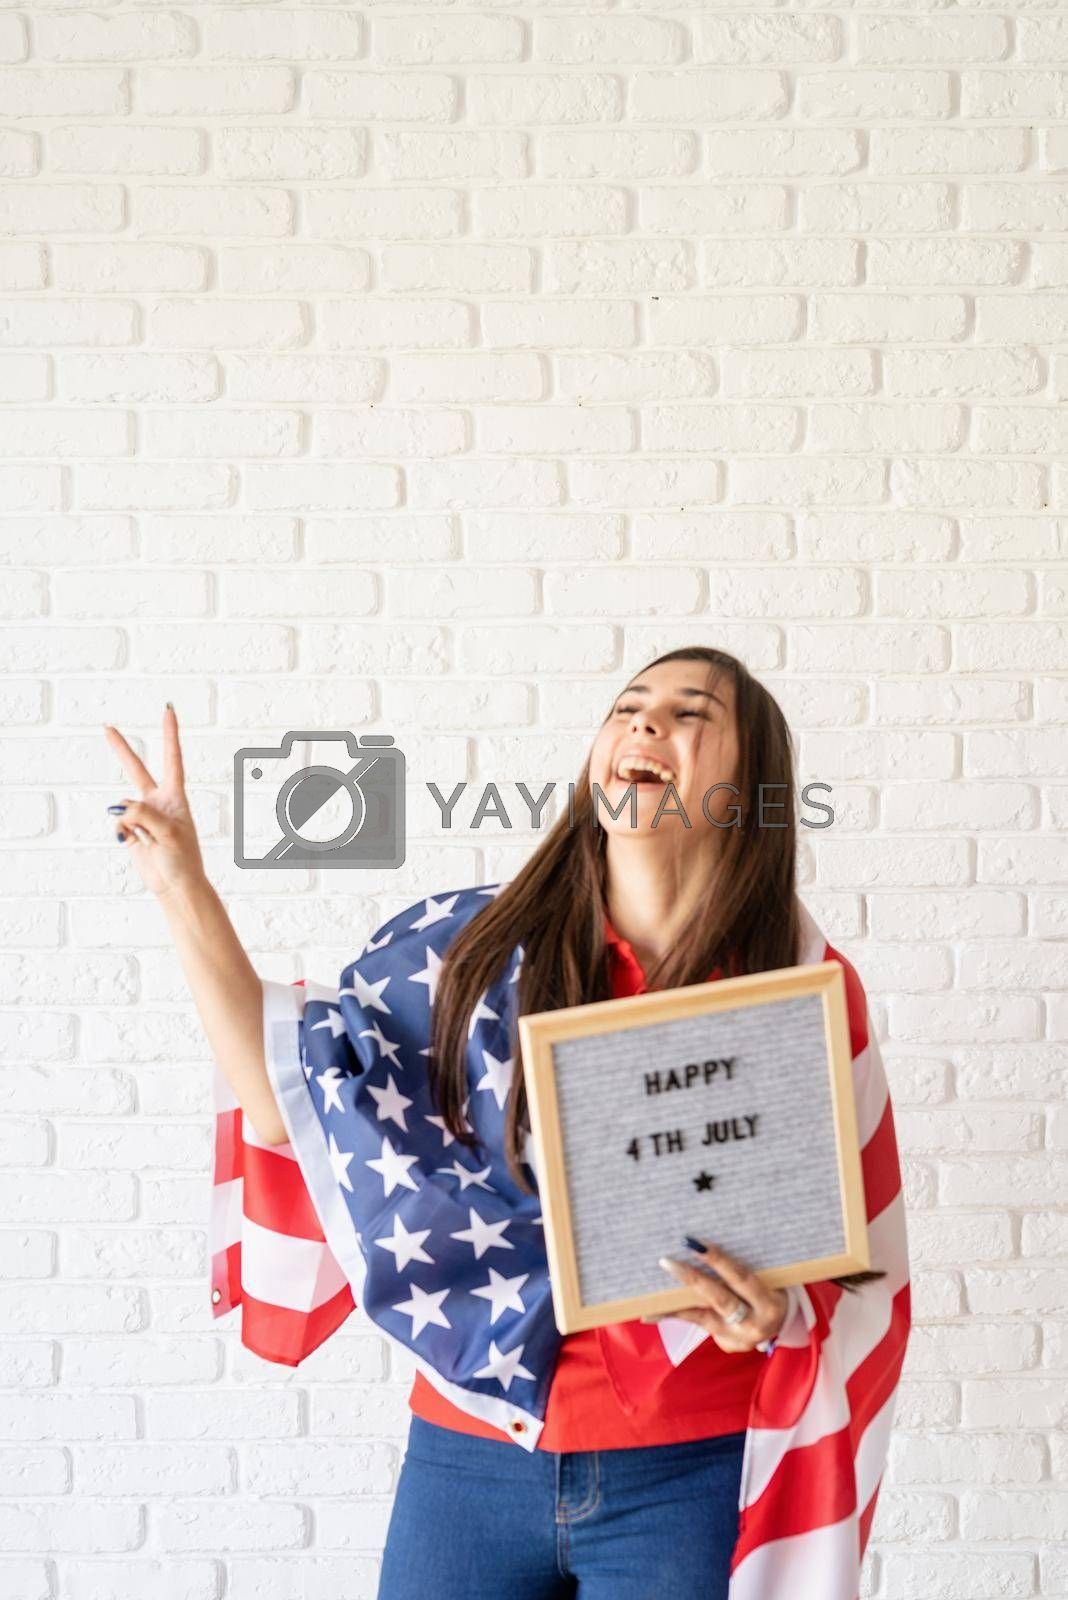 Independence day of the USA. Happy July 4th. Woman with american flag holding letter board with words Happy 4th July